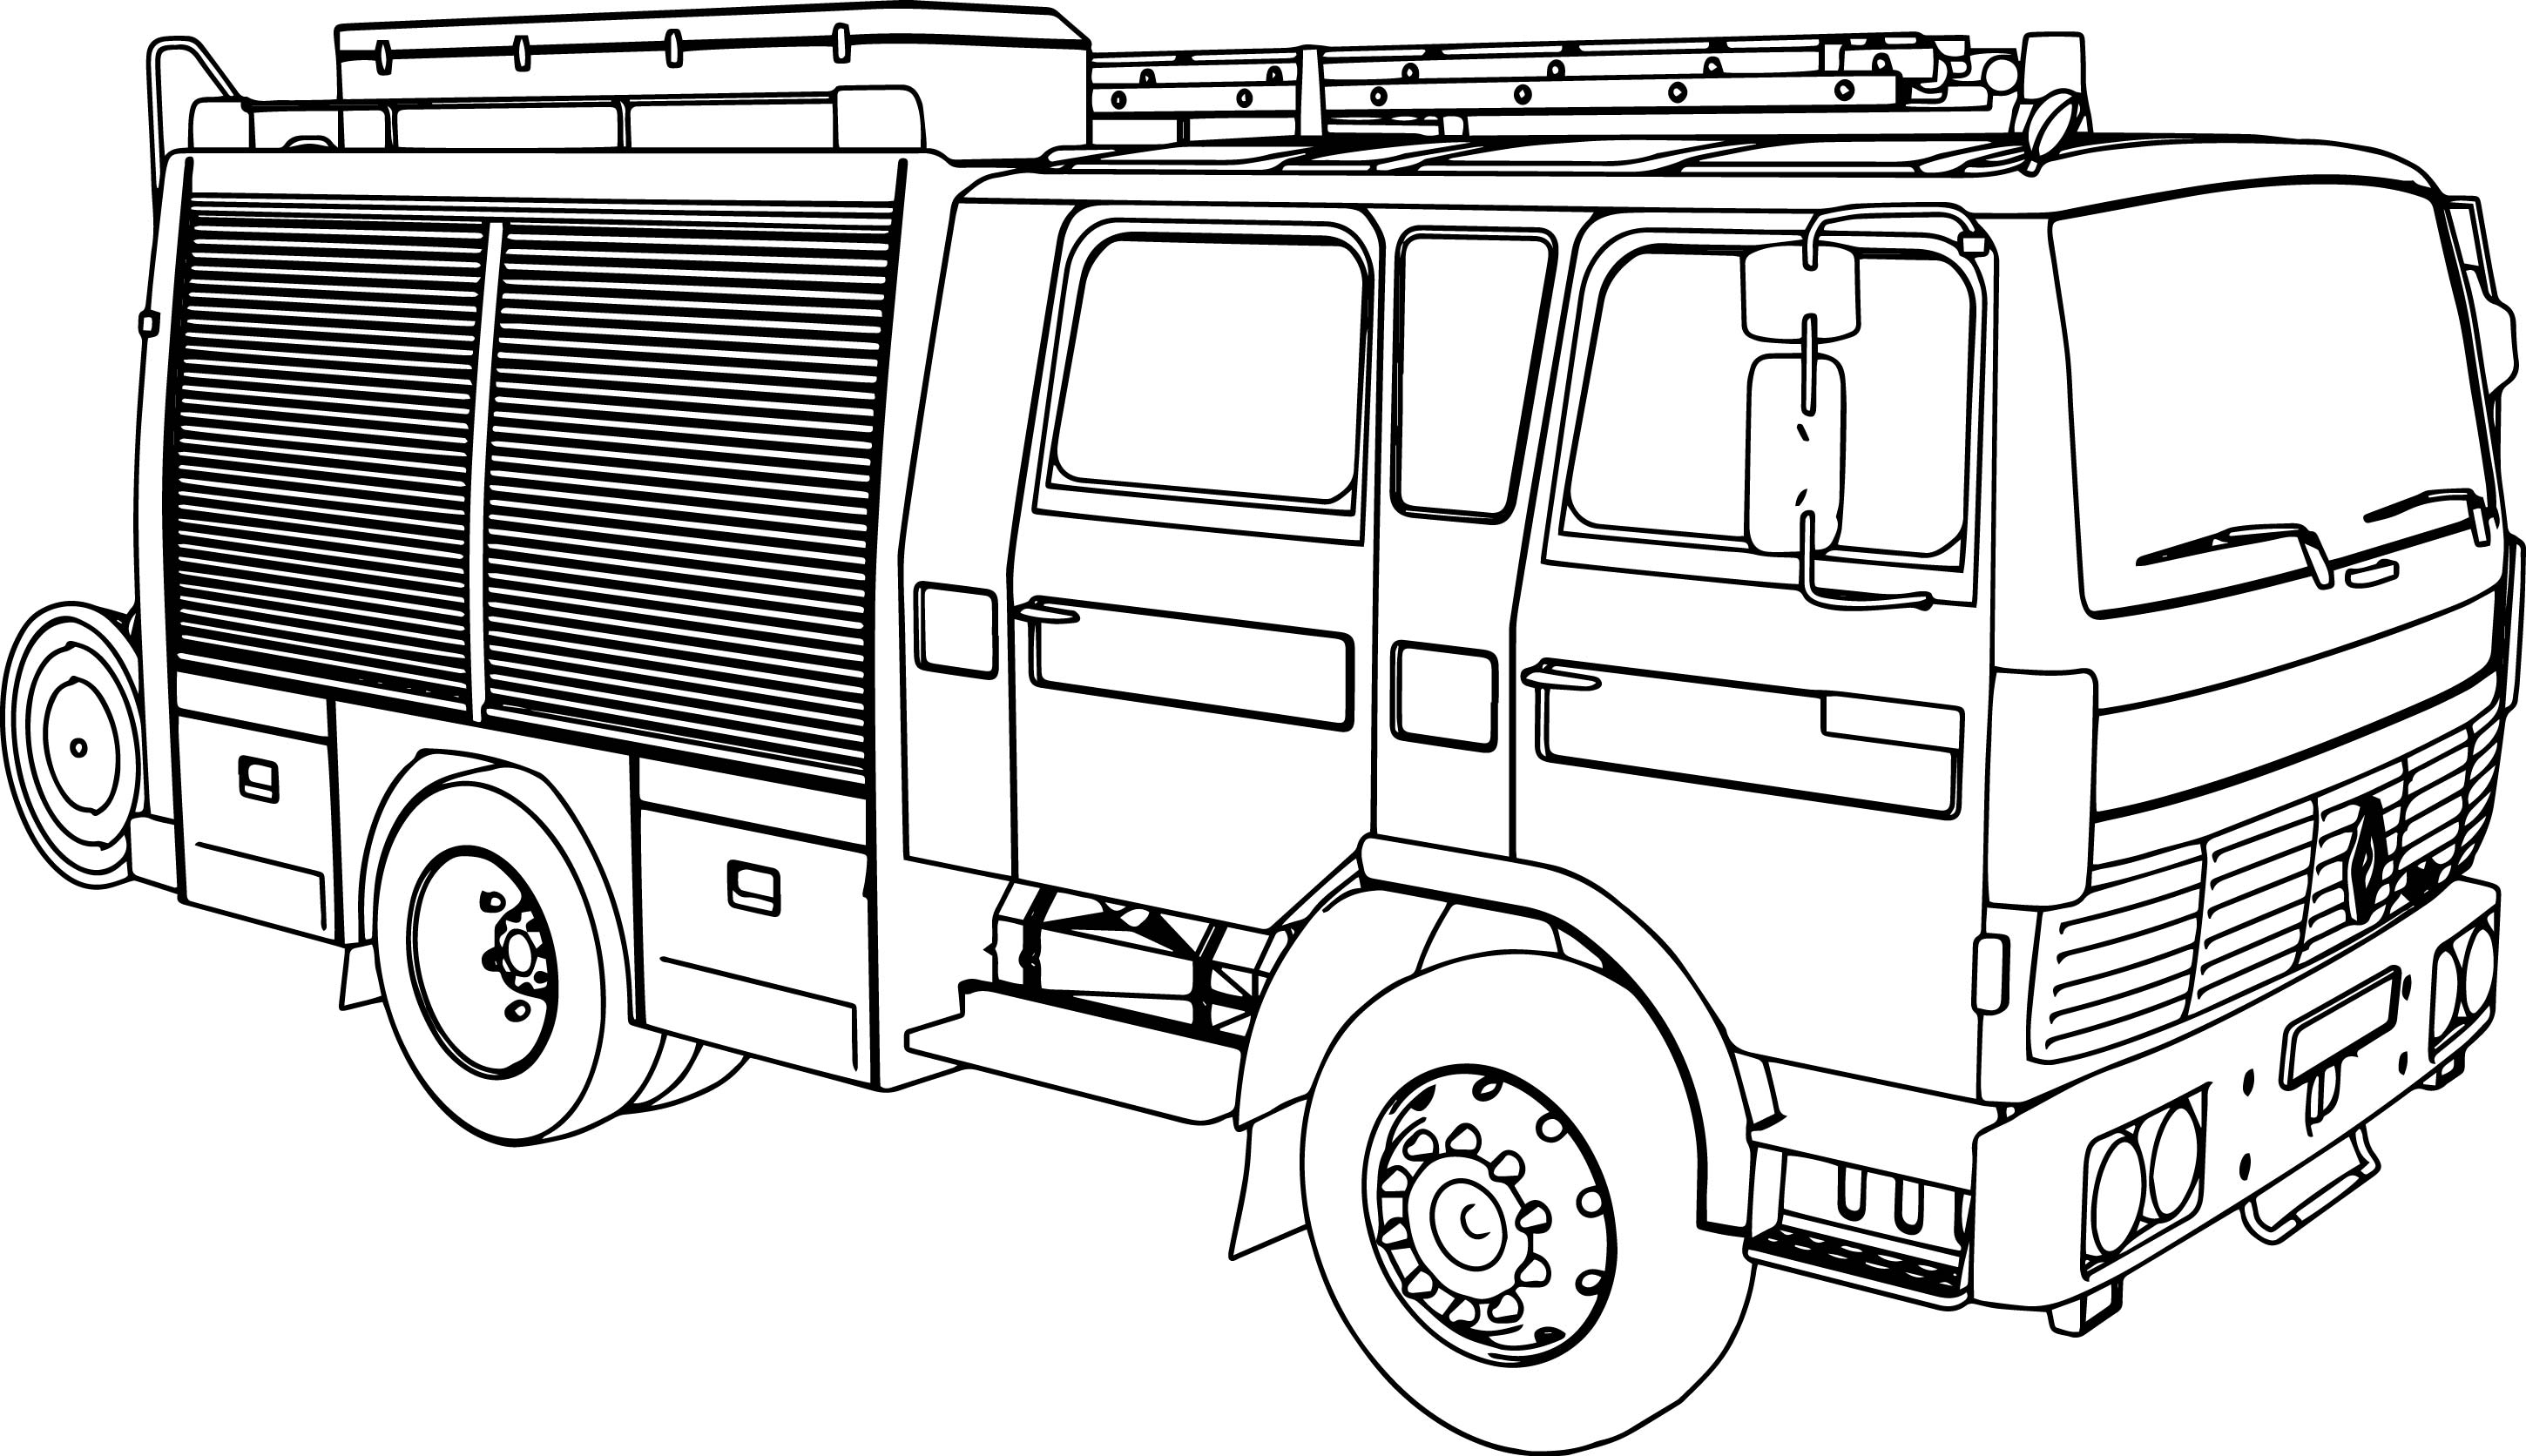 Renault g230 fire department coloring page for Fire station coloring page